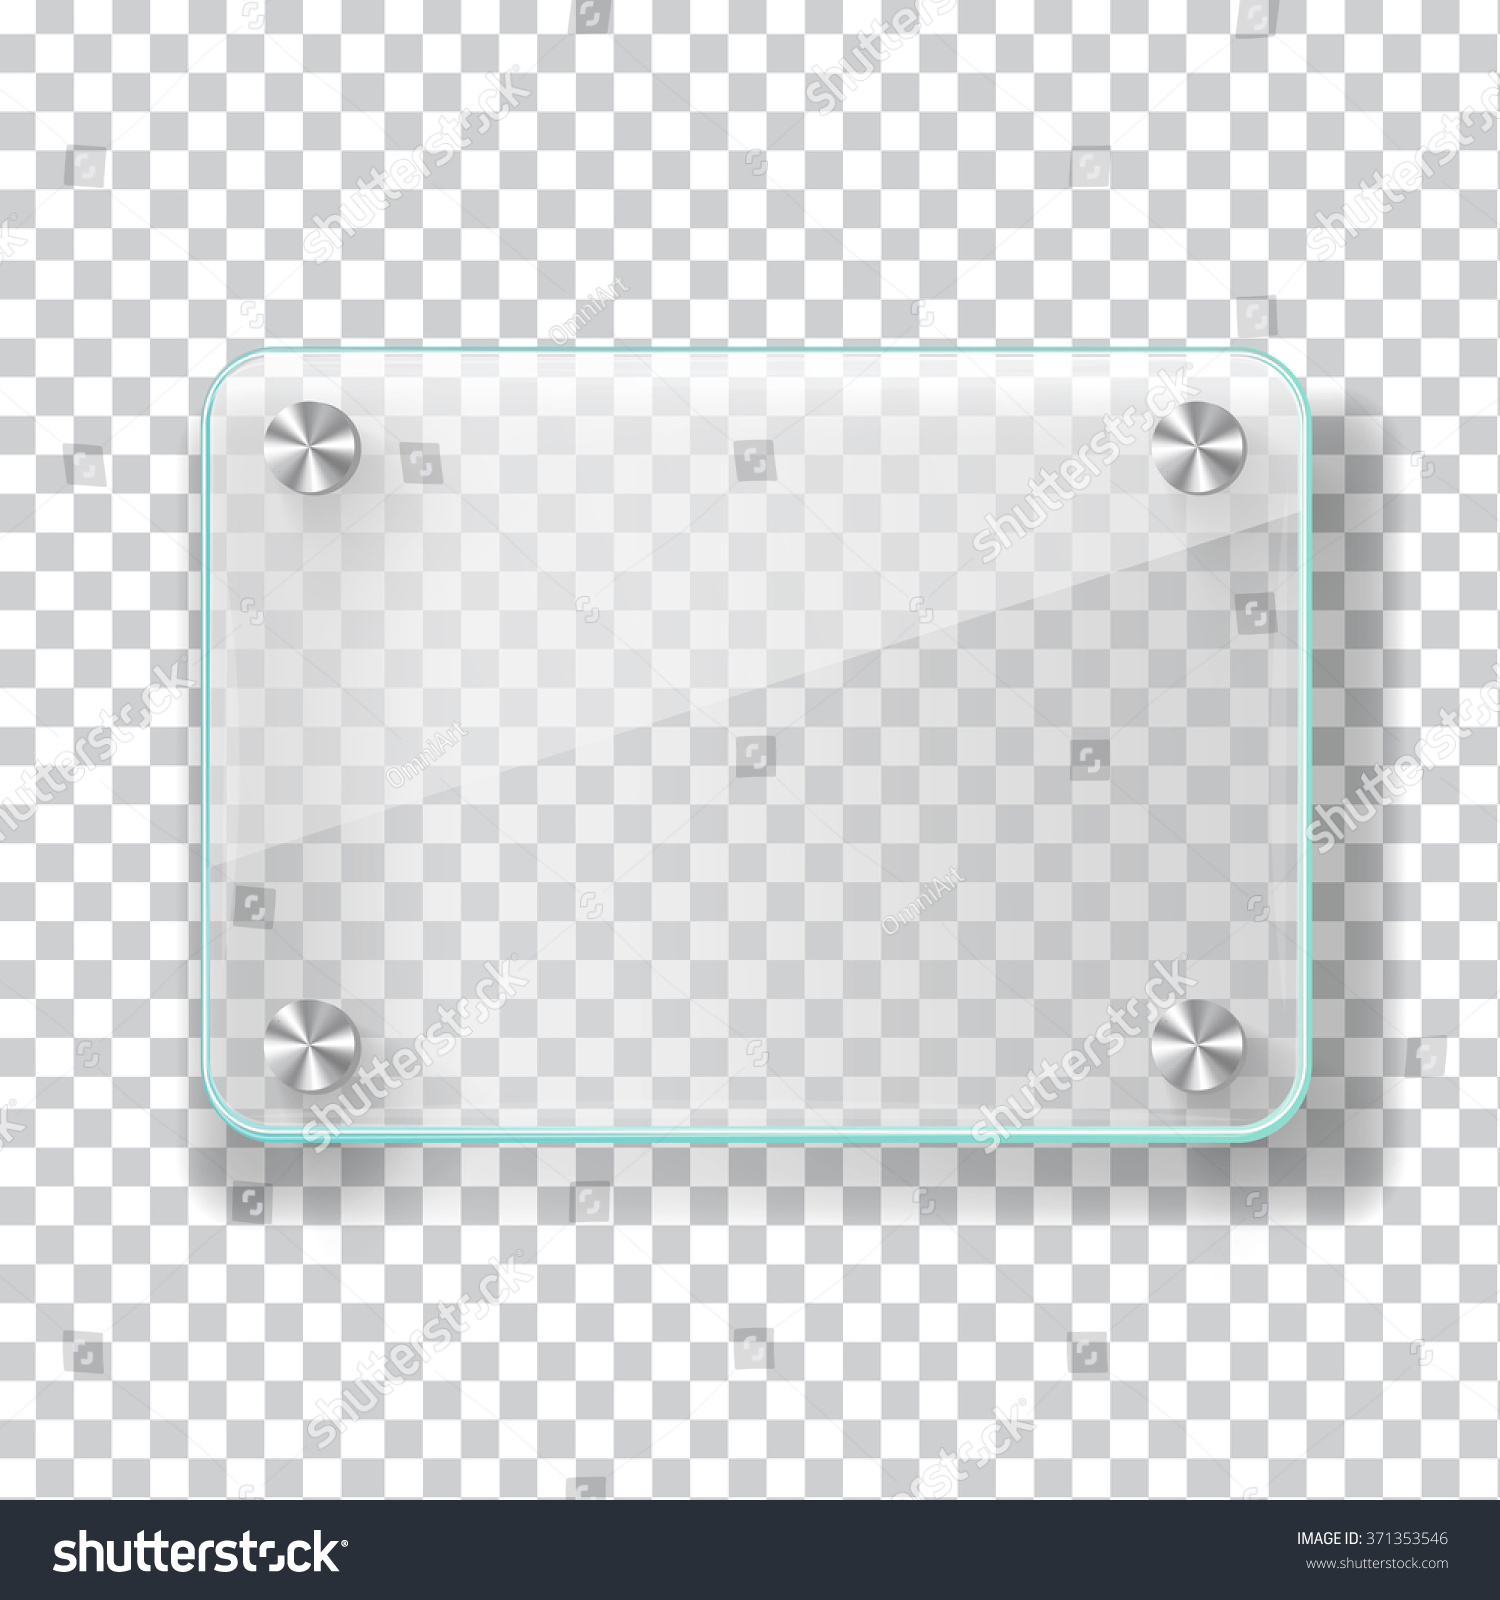 realistic transparent glass frame on light grey background vector eps10 illustration